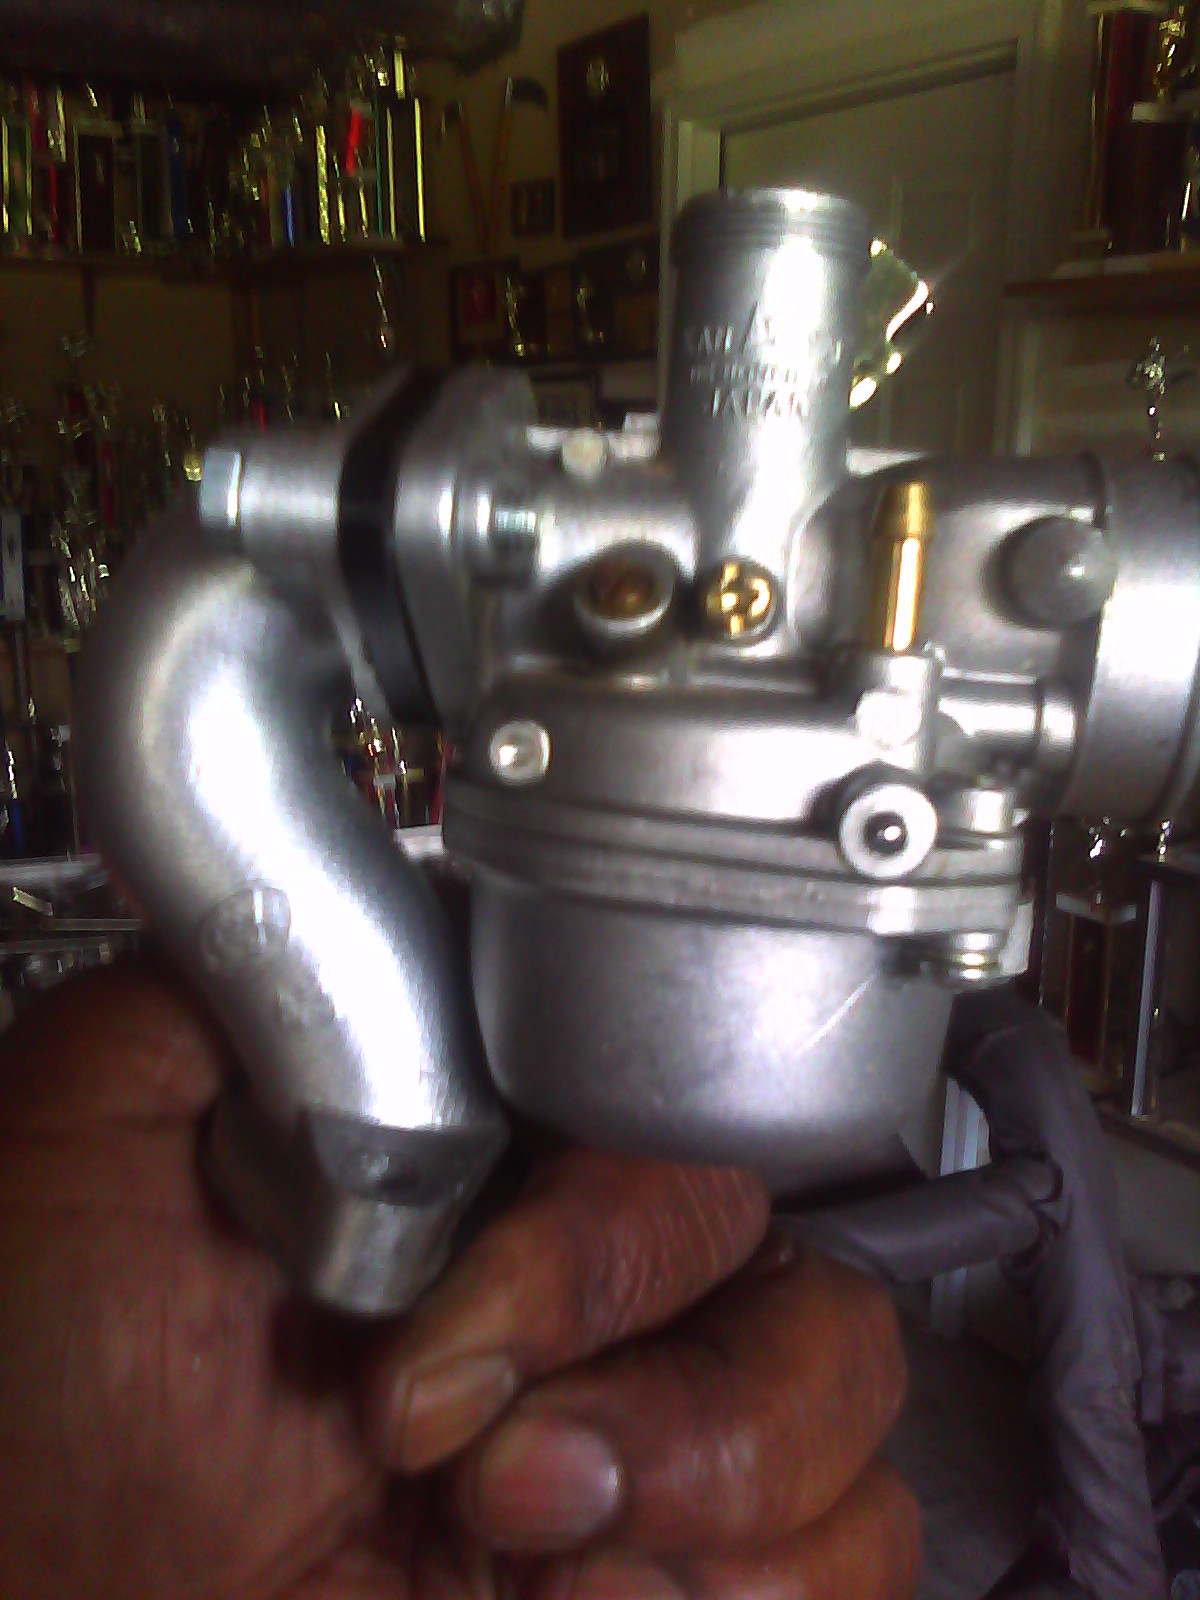 My atv cranks but would not start (new battery and plugs) what